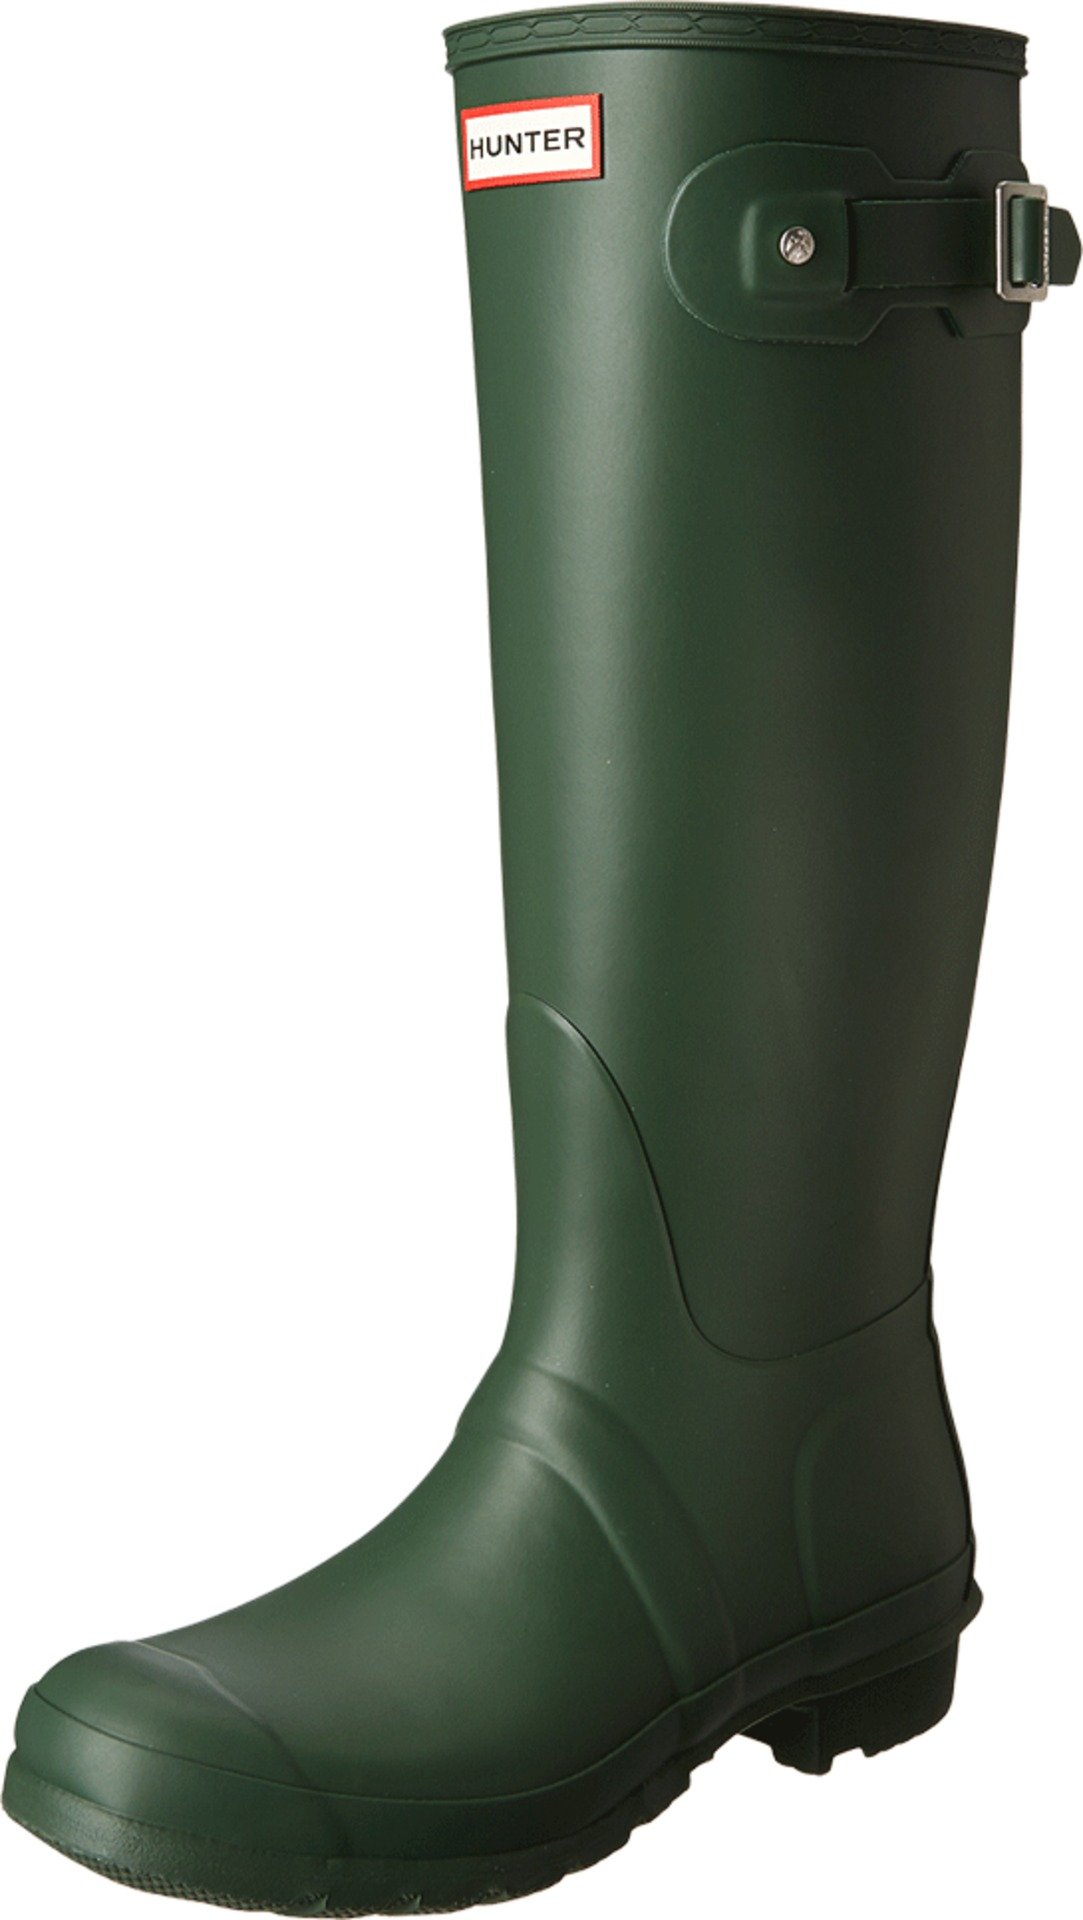 Hunter Women's Original Tall Wellington Boots, Hunter Green - 11 B(M) US by Hunter